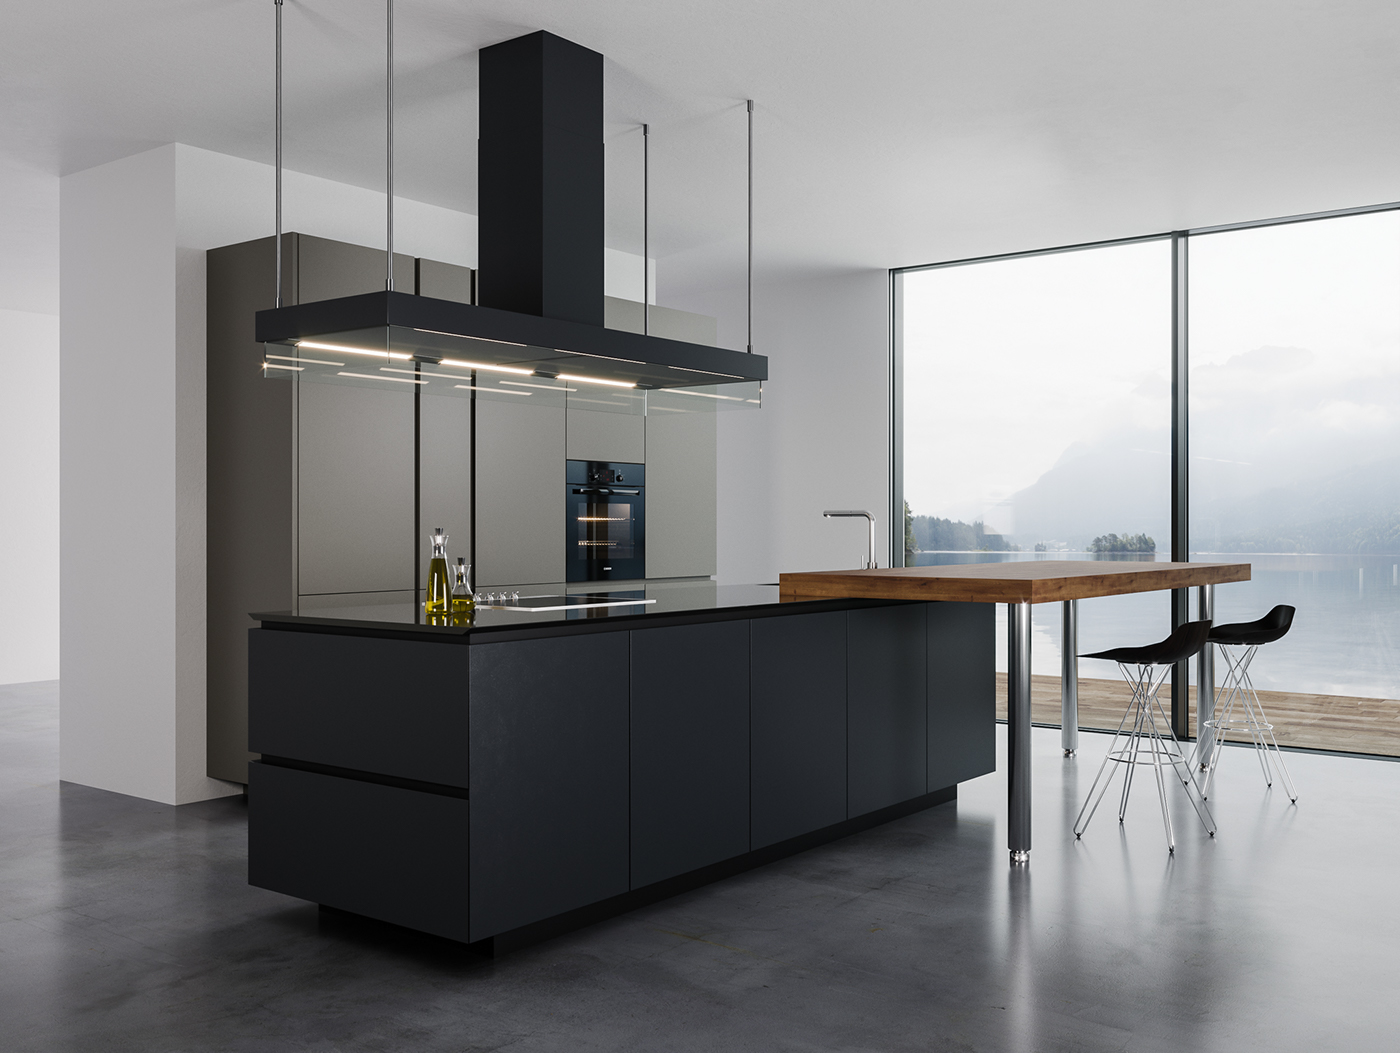 poliform varenna kitchens the idea is to have several sets of images showing different layouts and different models of kitchens in a photorealistic - Poliform Kitchen